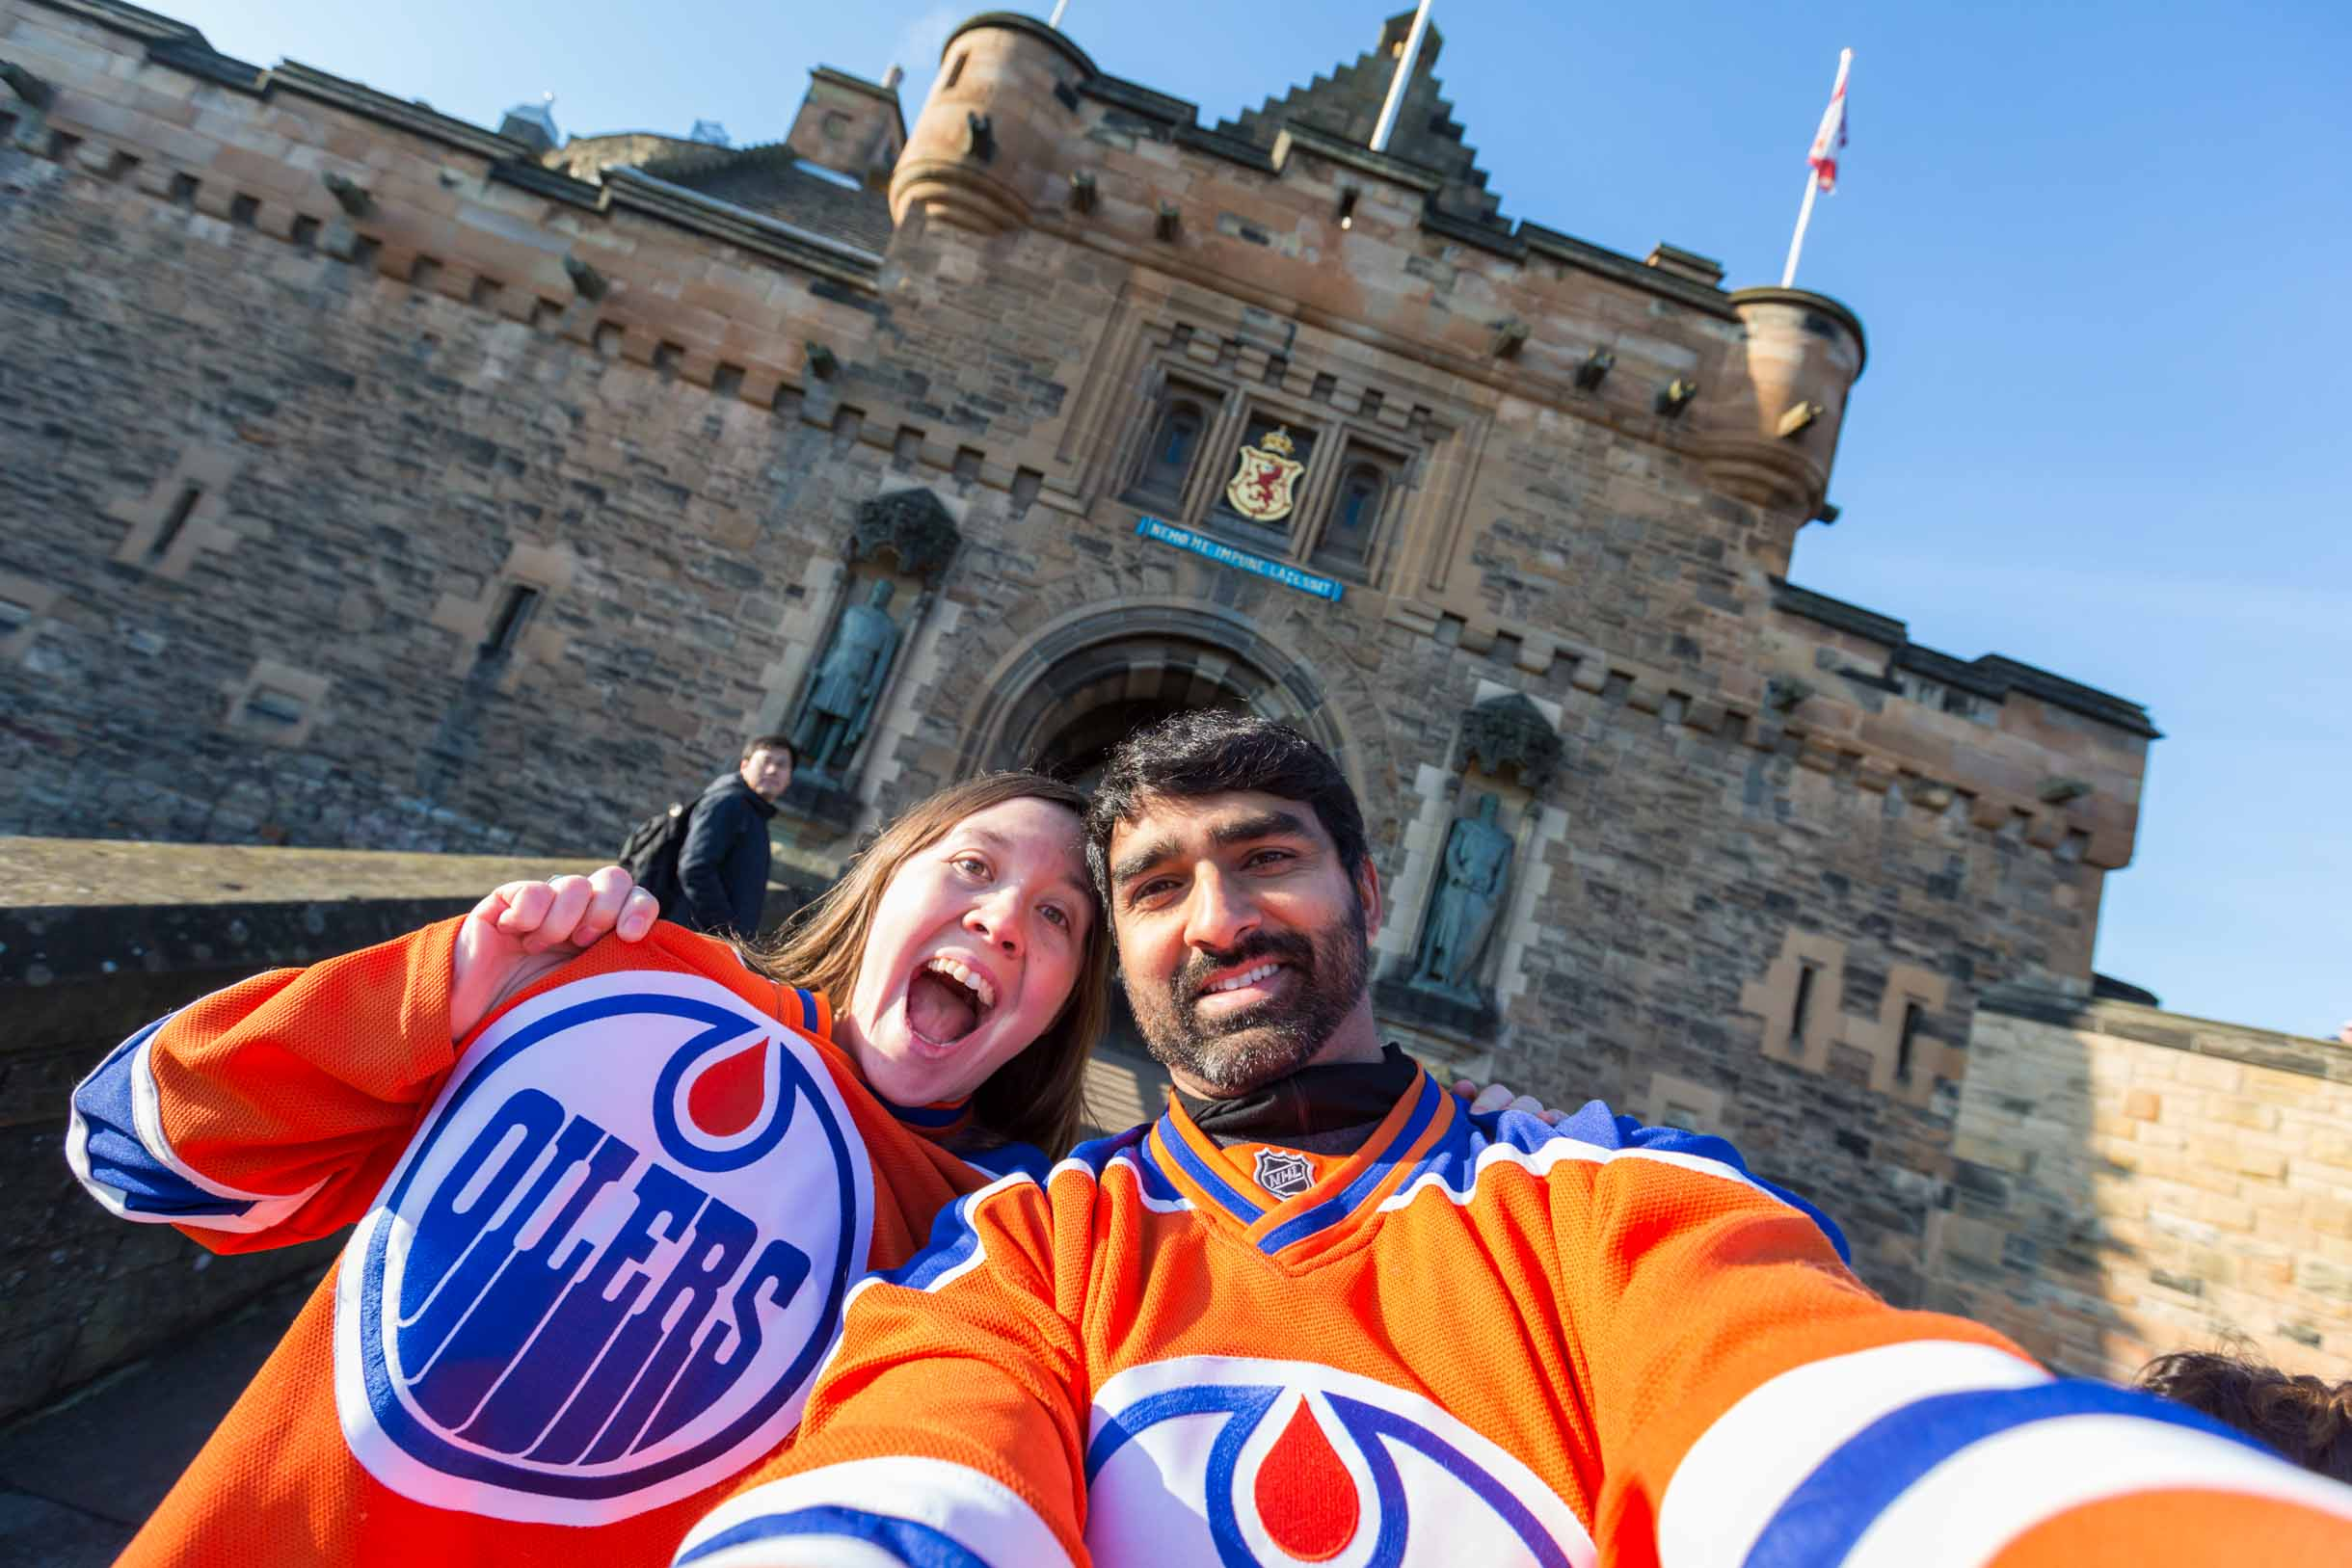 edmonton oilers jerseys edinburgh castle